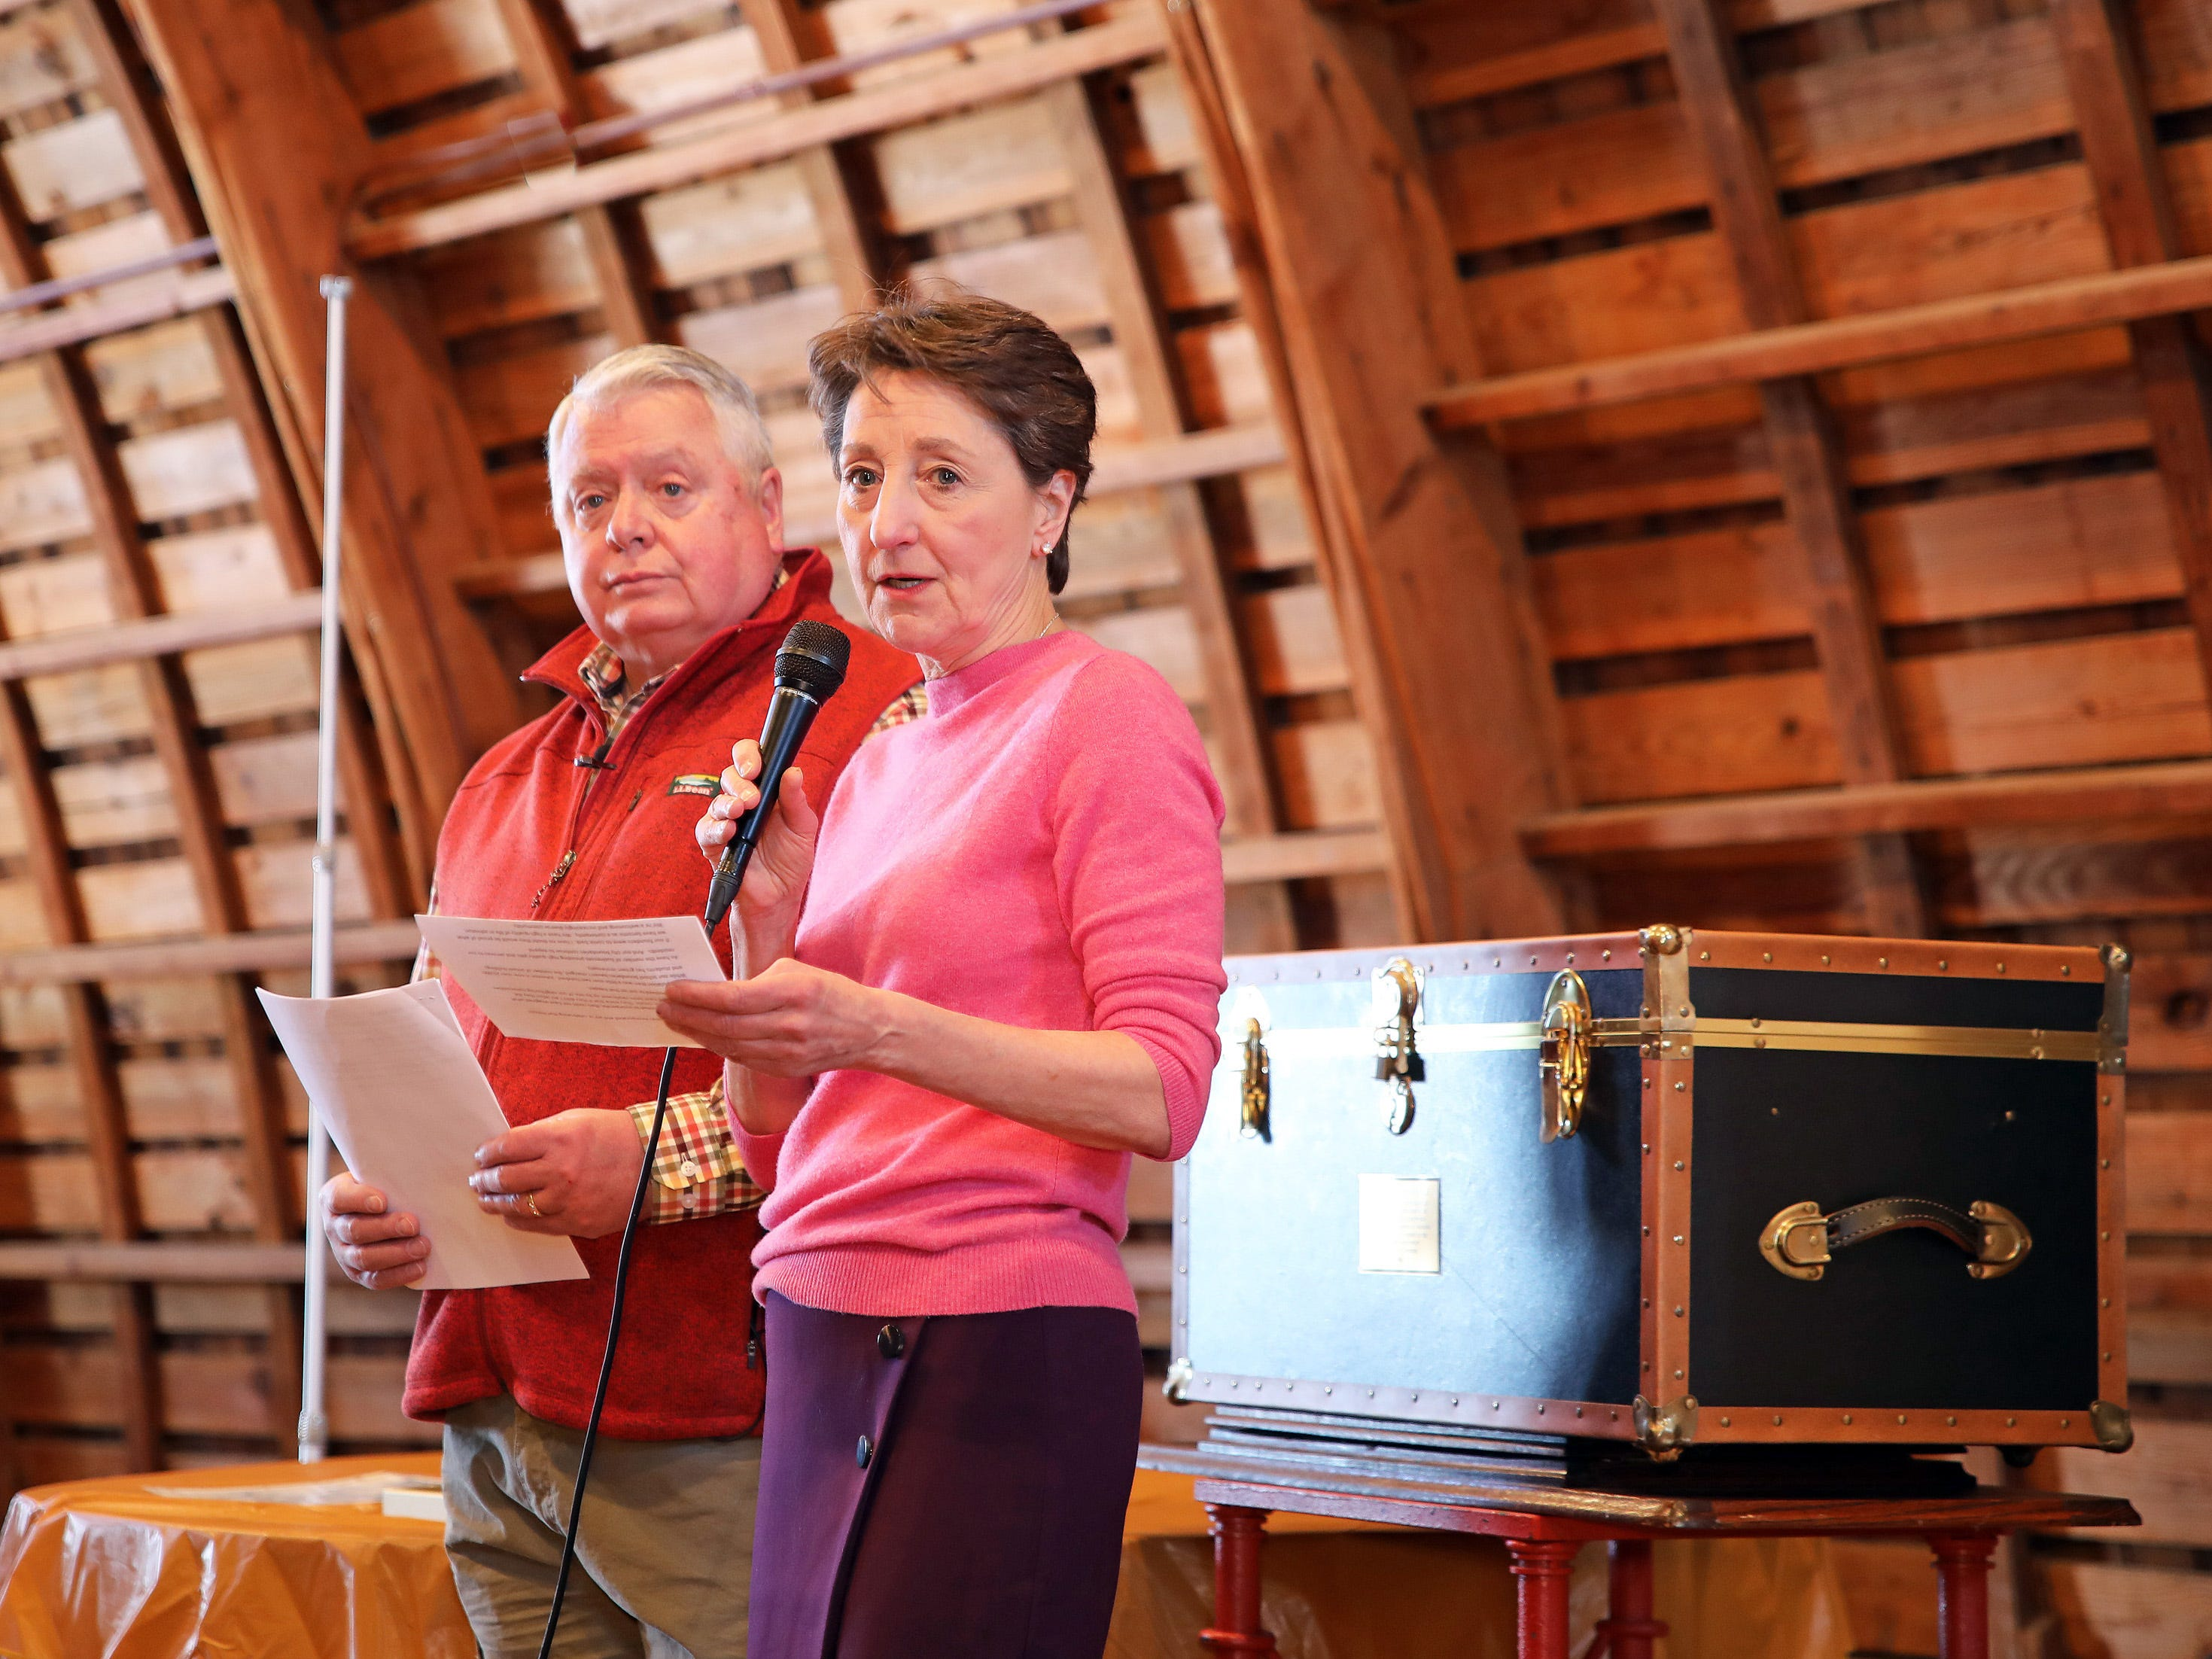 Johnston Mayor Paula Dierenfeld and President of the Johnston Historical Society Mike Knight acknowledge guests during the opening of the 25-year old time capsule from 1994 as the city of Johnston celebrates its 50th anniversary at the Simpson House and Barn Museum at 6161 Northglenn Drive on Sunday, March 10, 2019, in Johnston. The city was incorporated in 1969 with 2,236 residents and 50 years later, over 21,000 residents call Johnston home.